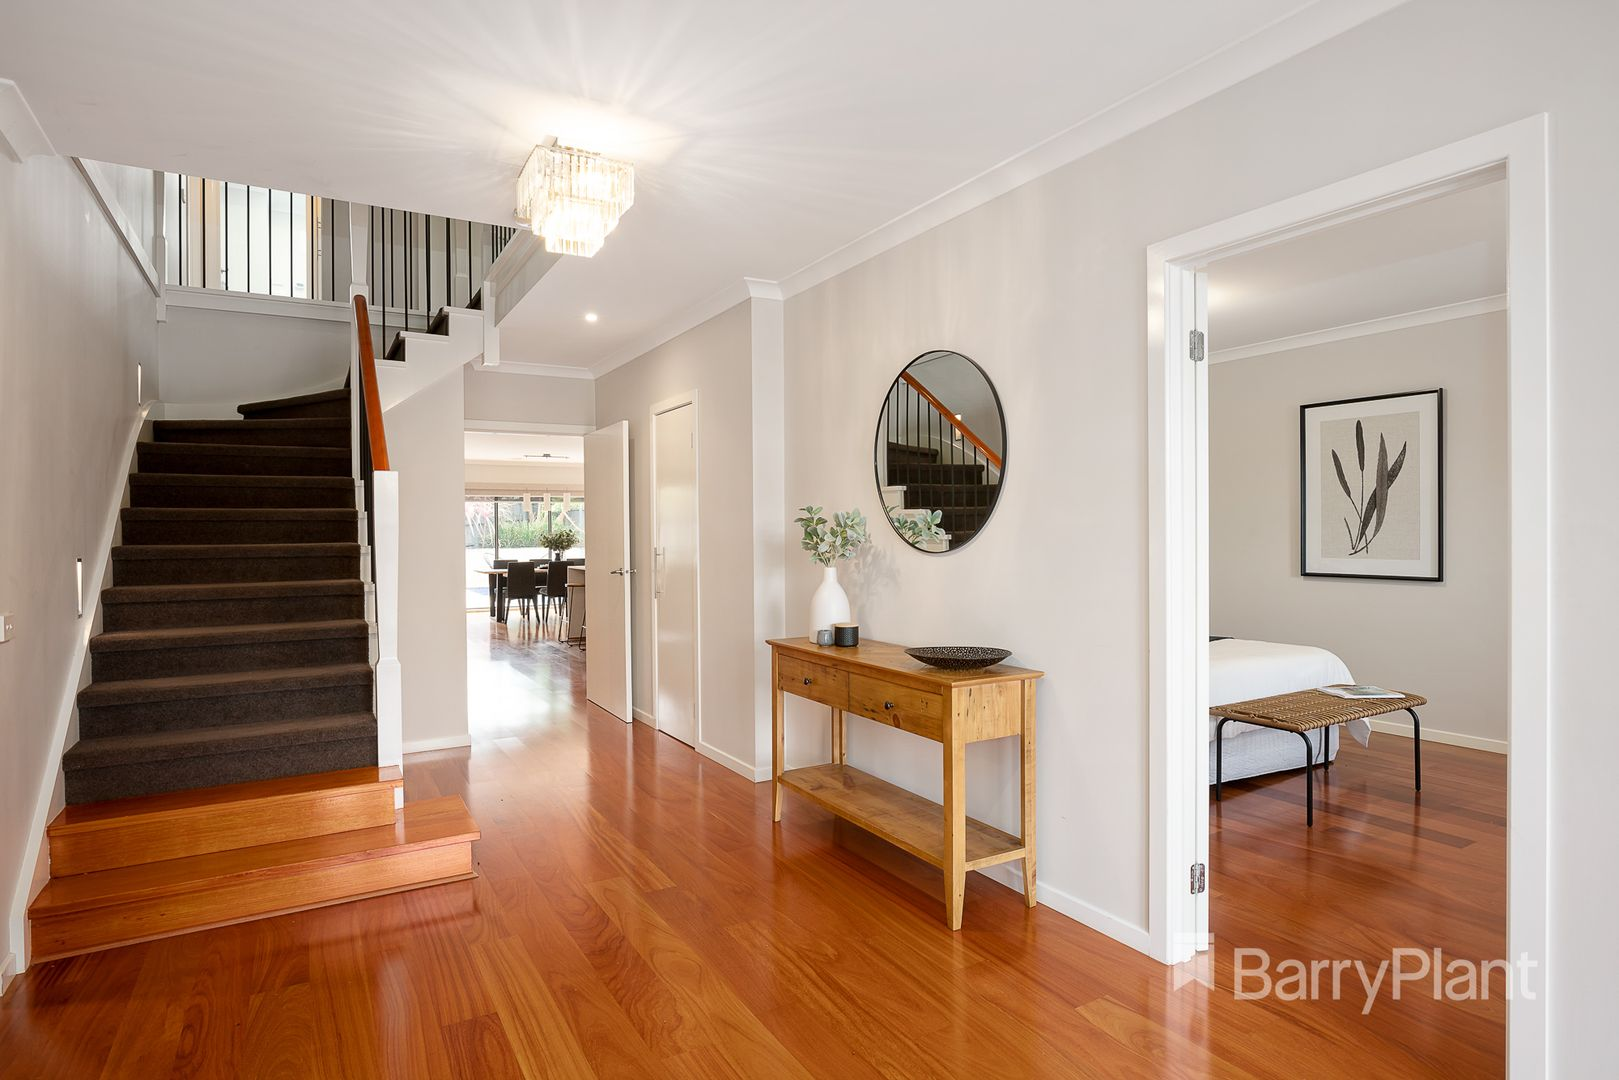 61 Whittens Lane, Doncaster VIC 3108, Image 1